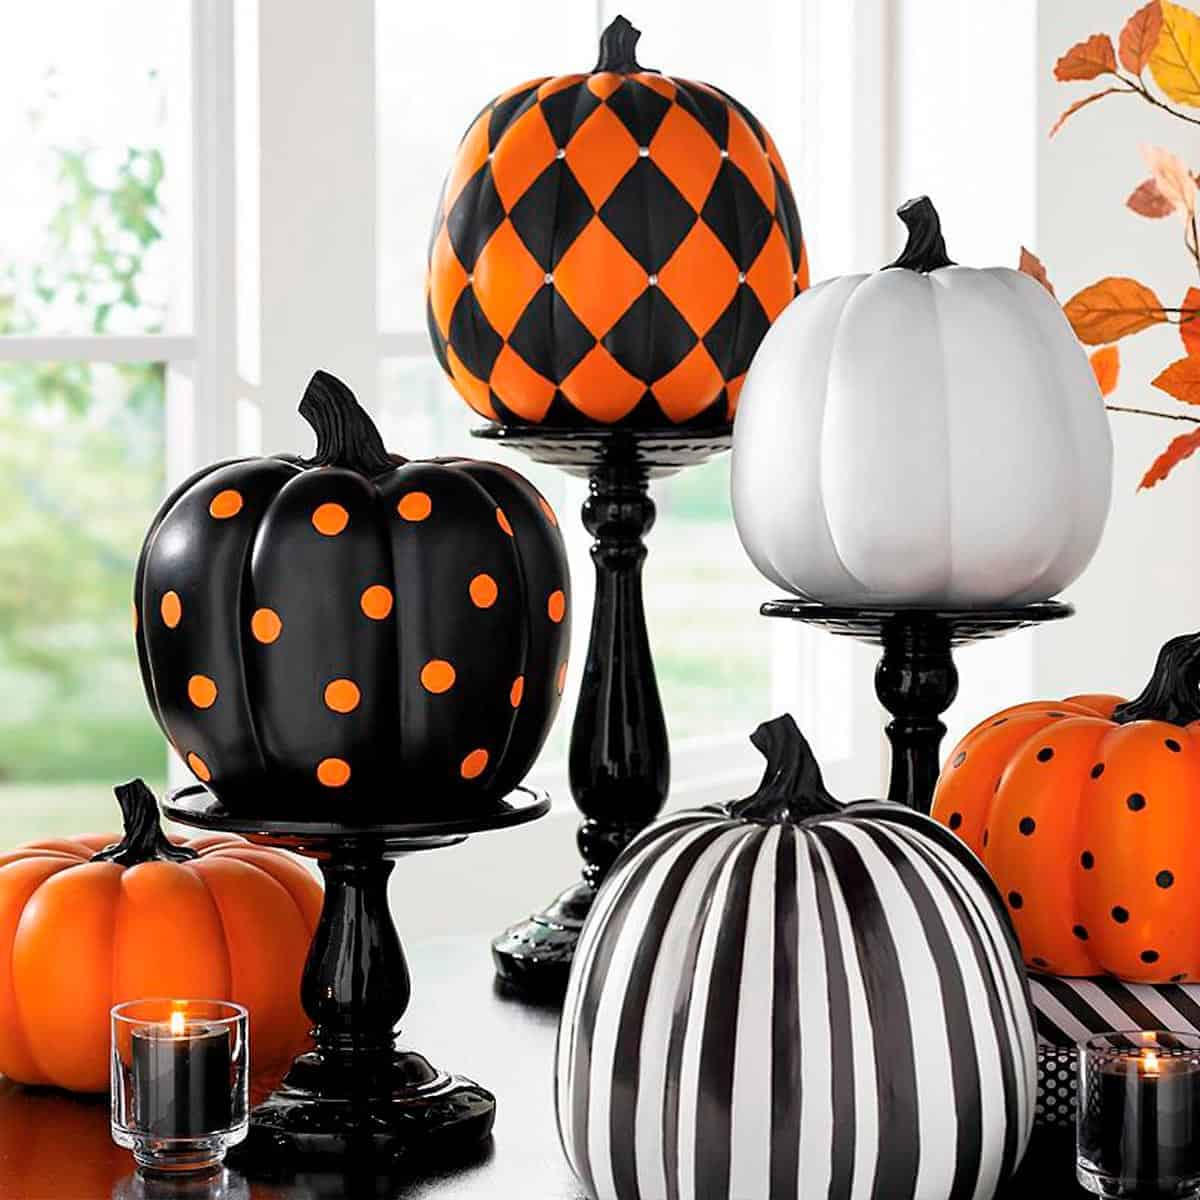 10 ways to decorate a pumpkin without carving apartmentguide com